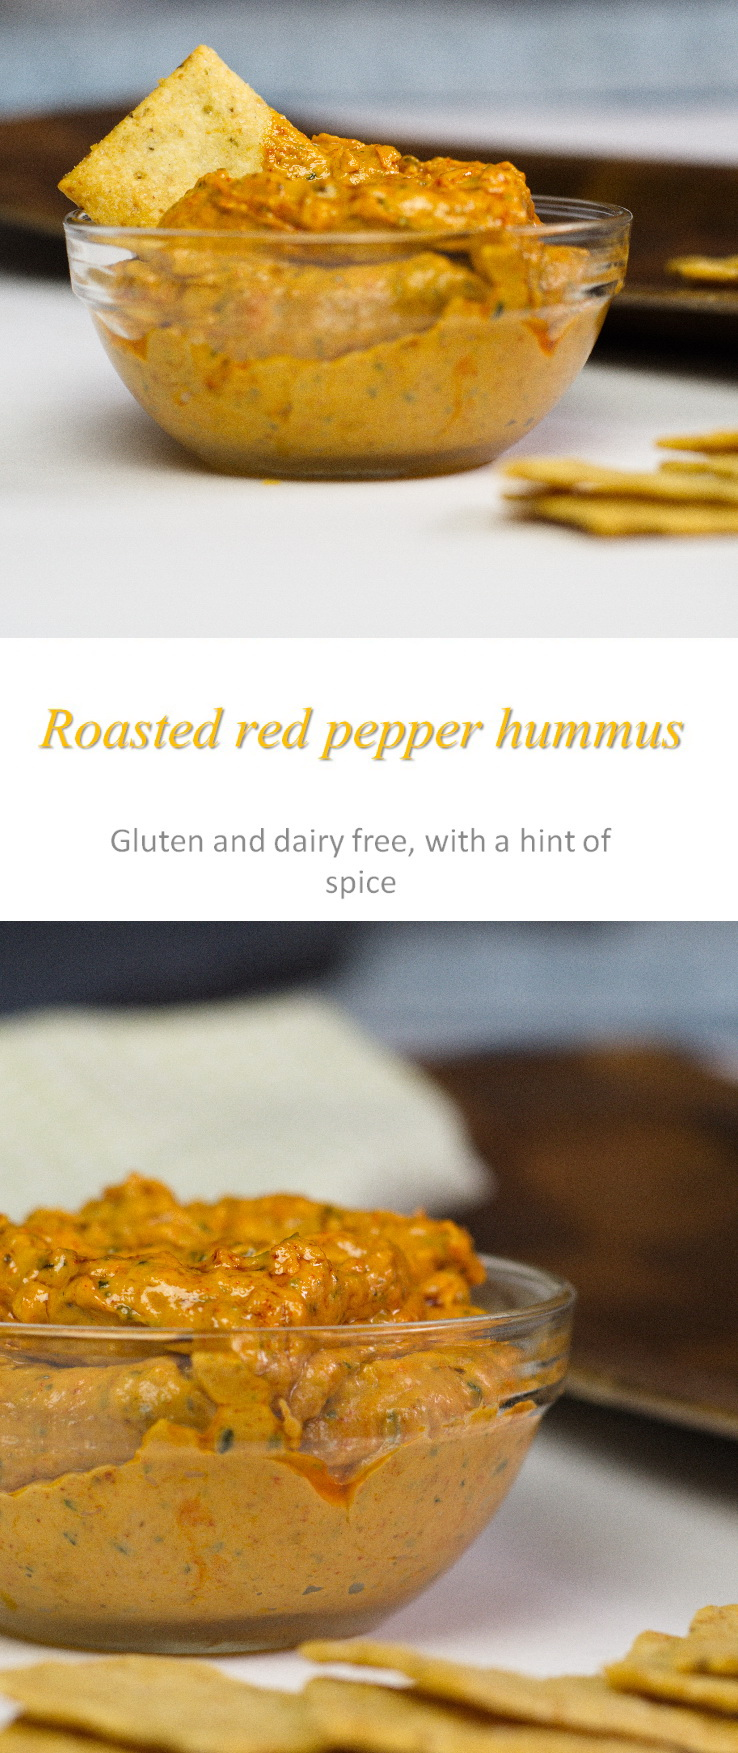 A really easy and tasty recipe to make red pepper hummus at home - healthy and all natural ingredients and hint of spice #hummus